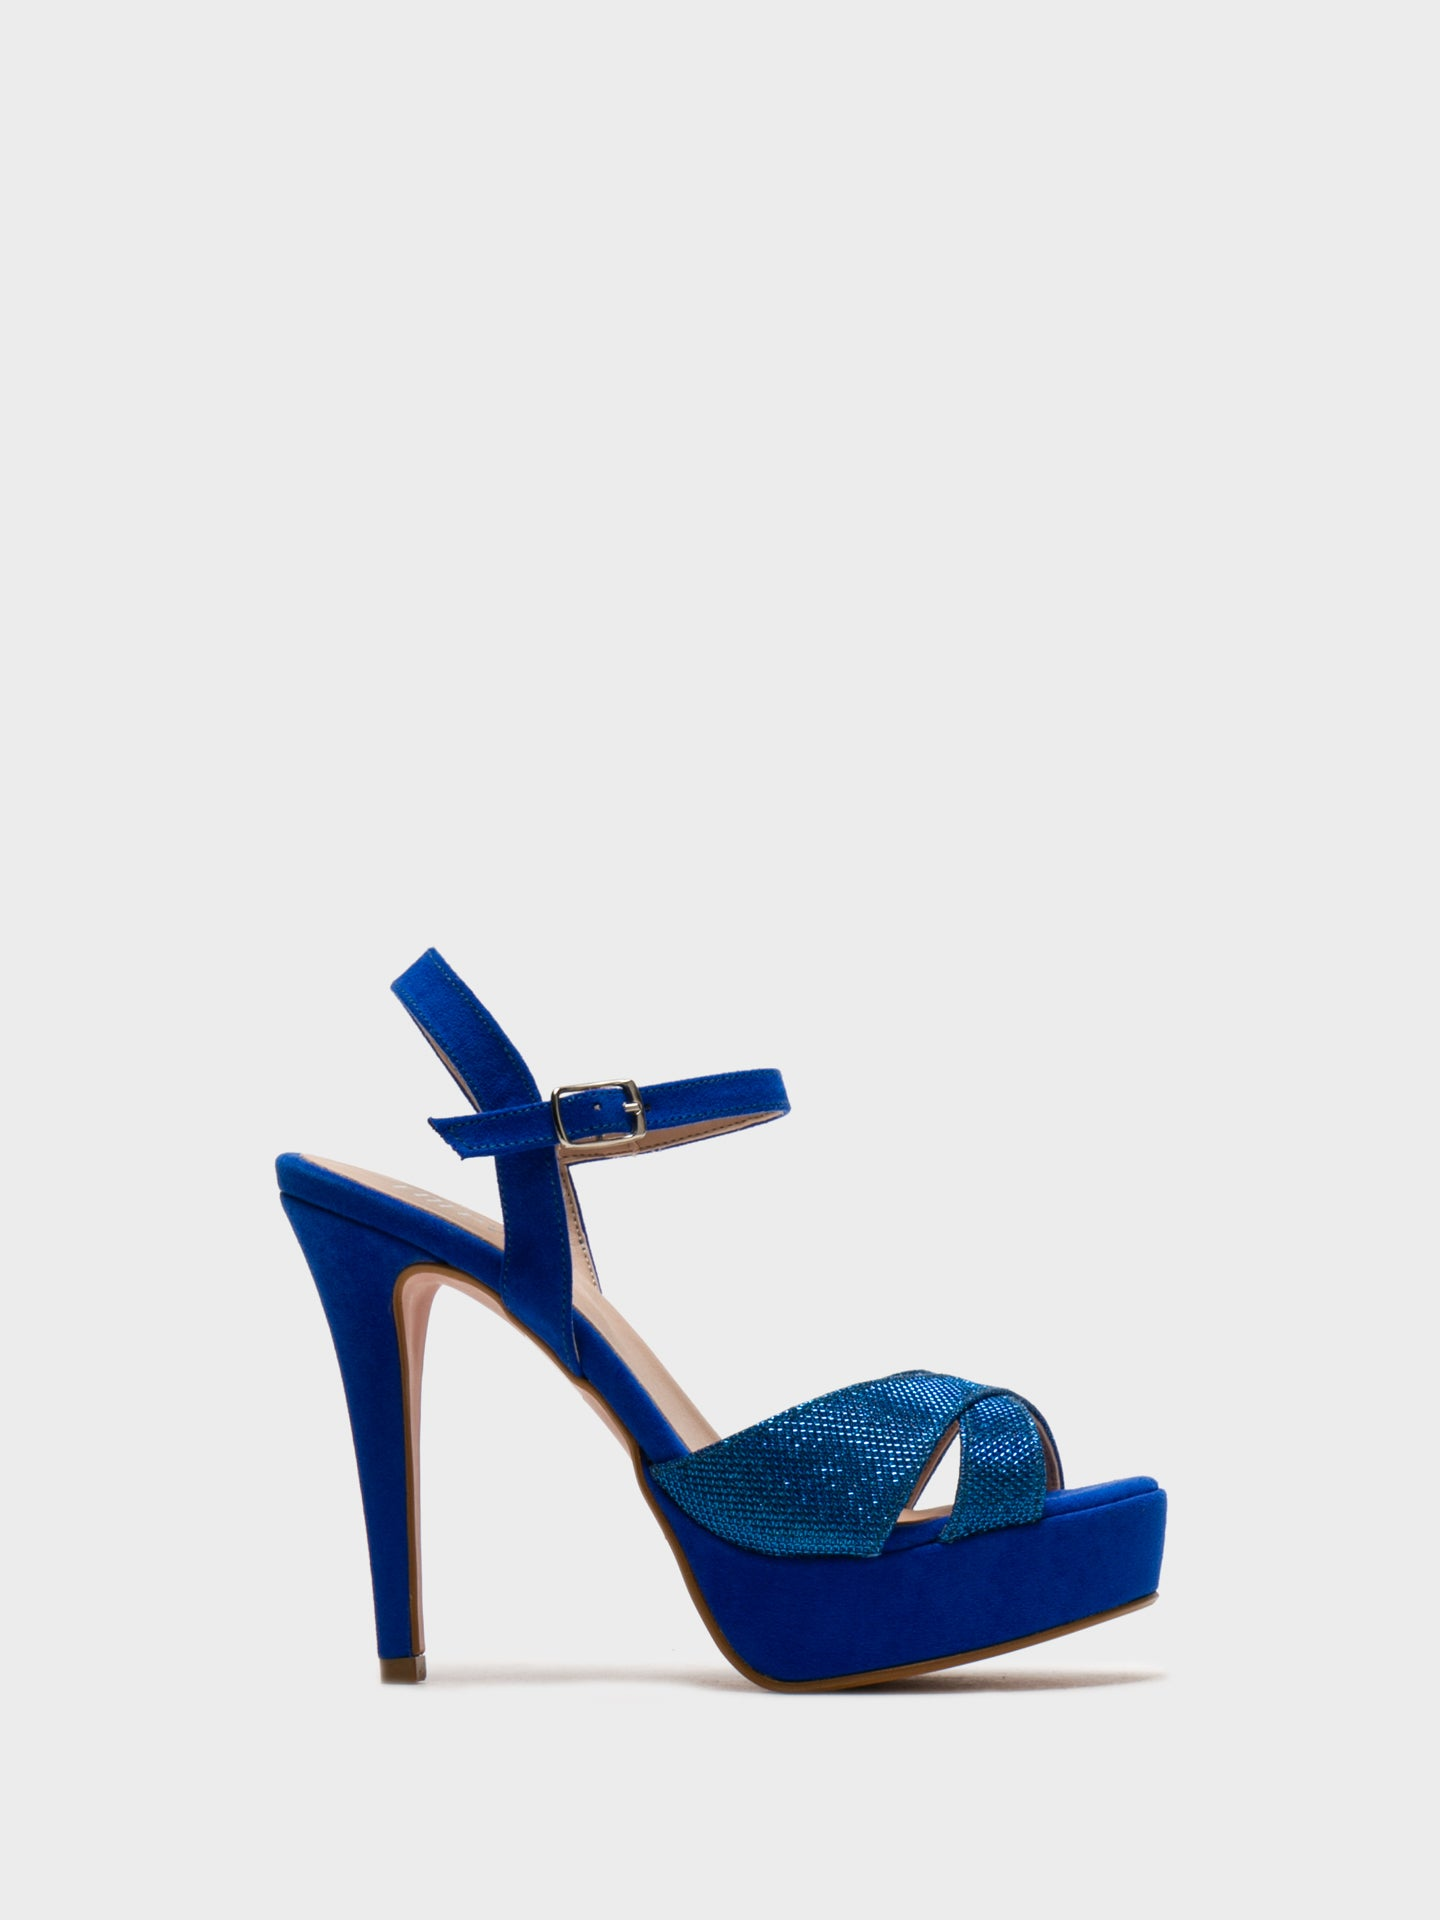 Foreva Blue Sling-Back Pumps Sandals